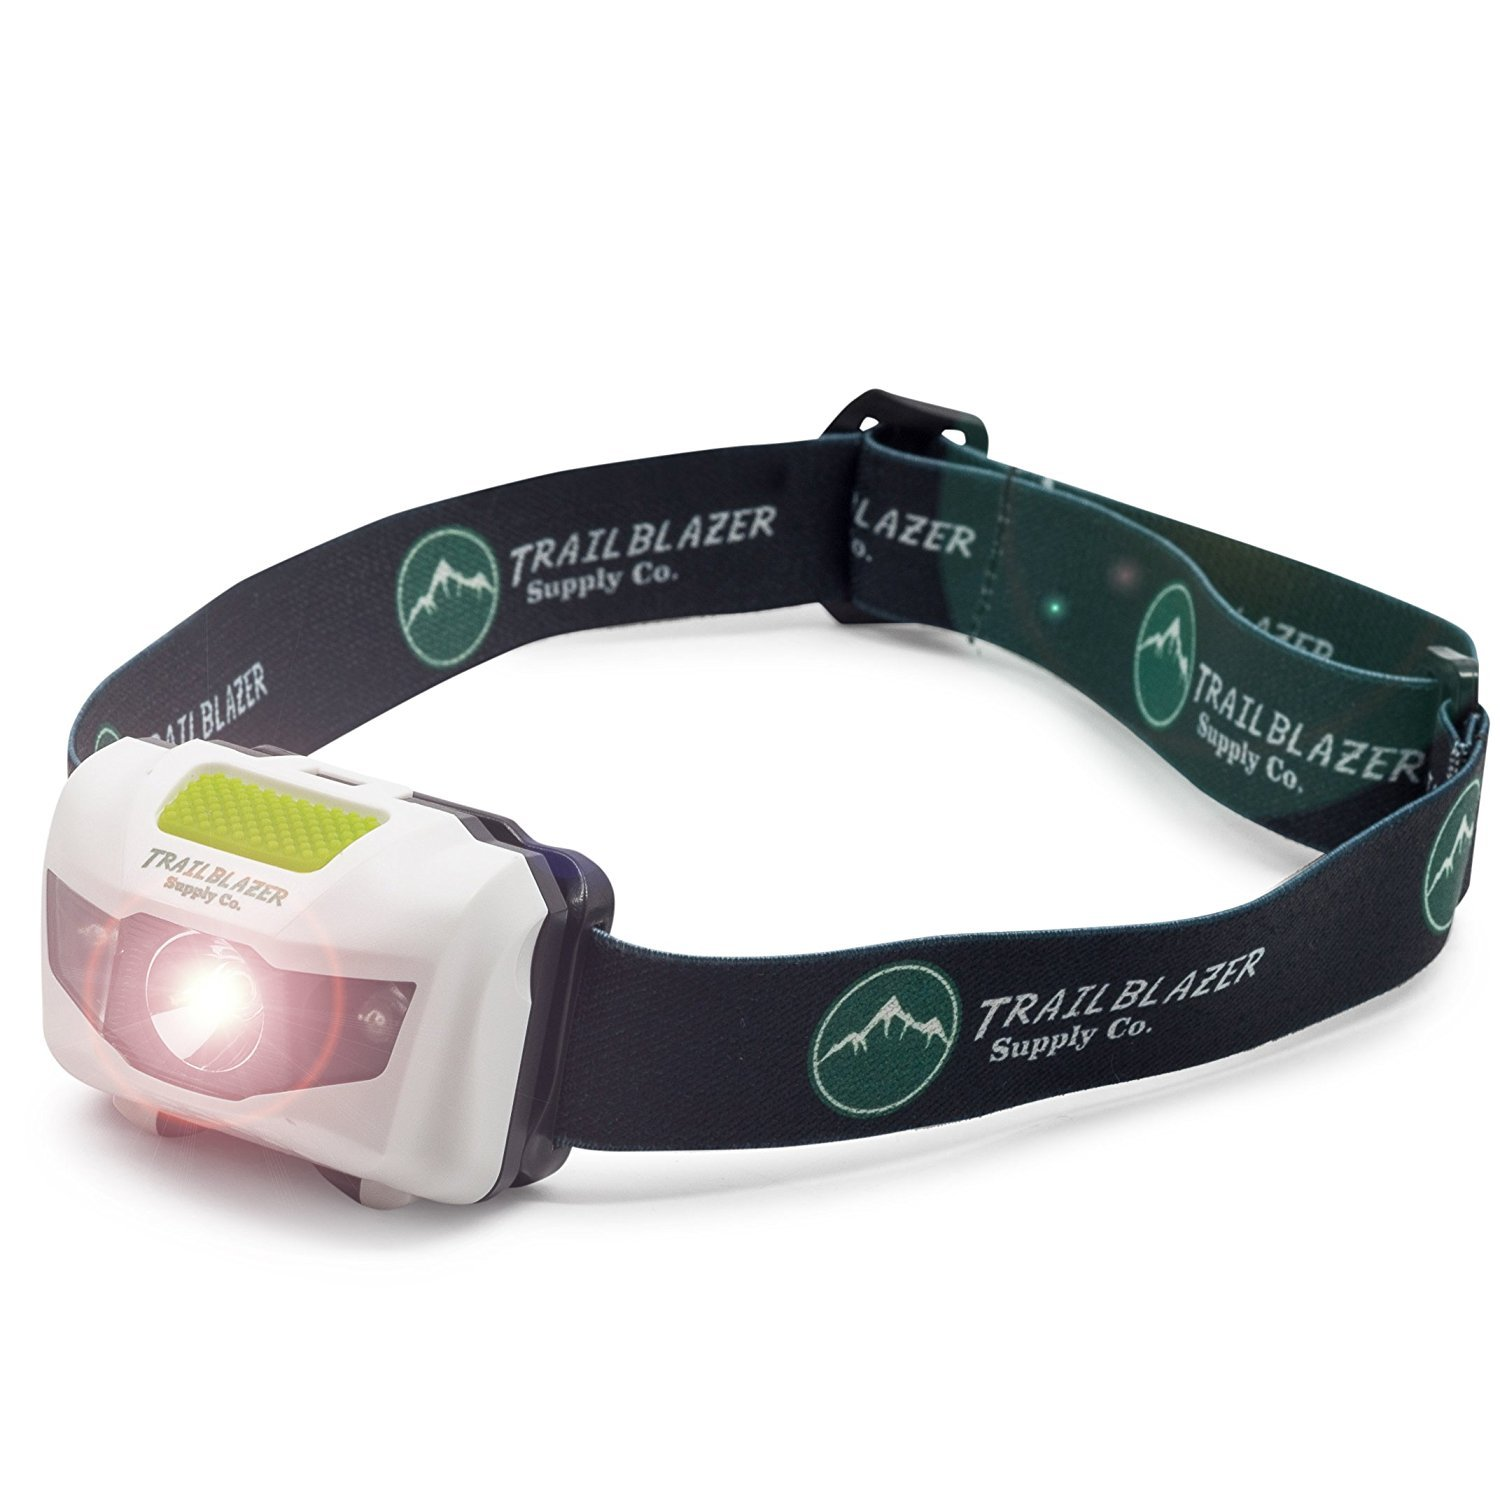 LED Headlamp - For Running, Camping, Reading, Fishing, Hunting, Dog Walking, Hiking, Biking Trails, and Kids - Bright 300 Lumens, Lightweight, Waterproof, Red and Strobe Flashlight, w/ AAA Batteries by Trailblazer Supply Co (Image #1)